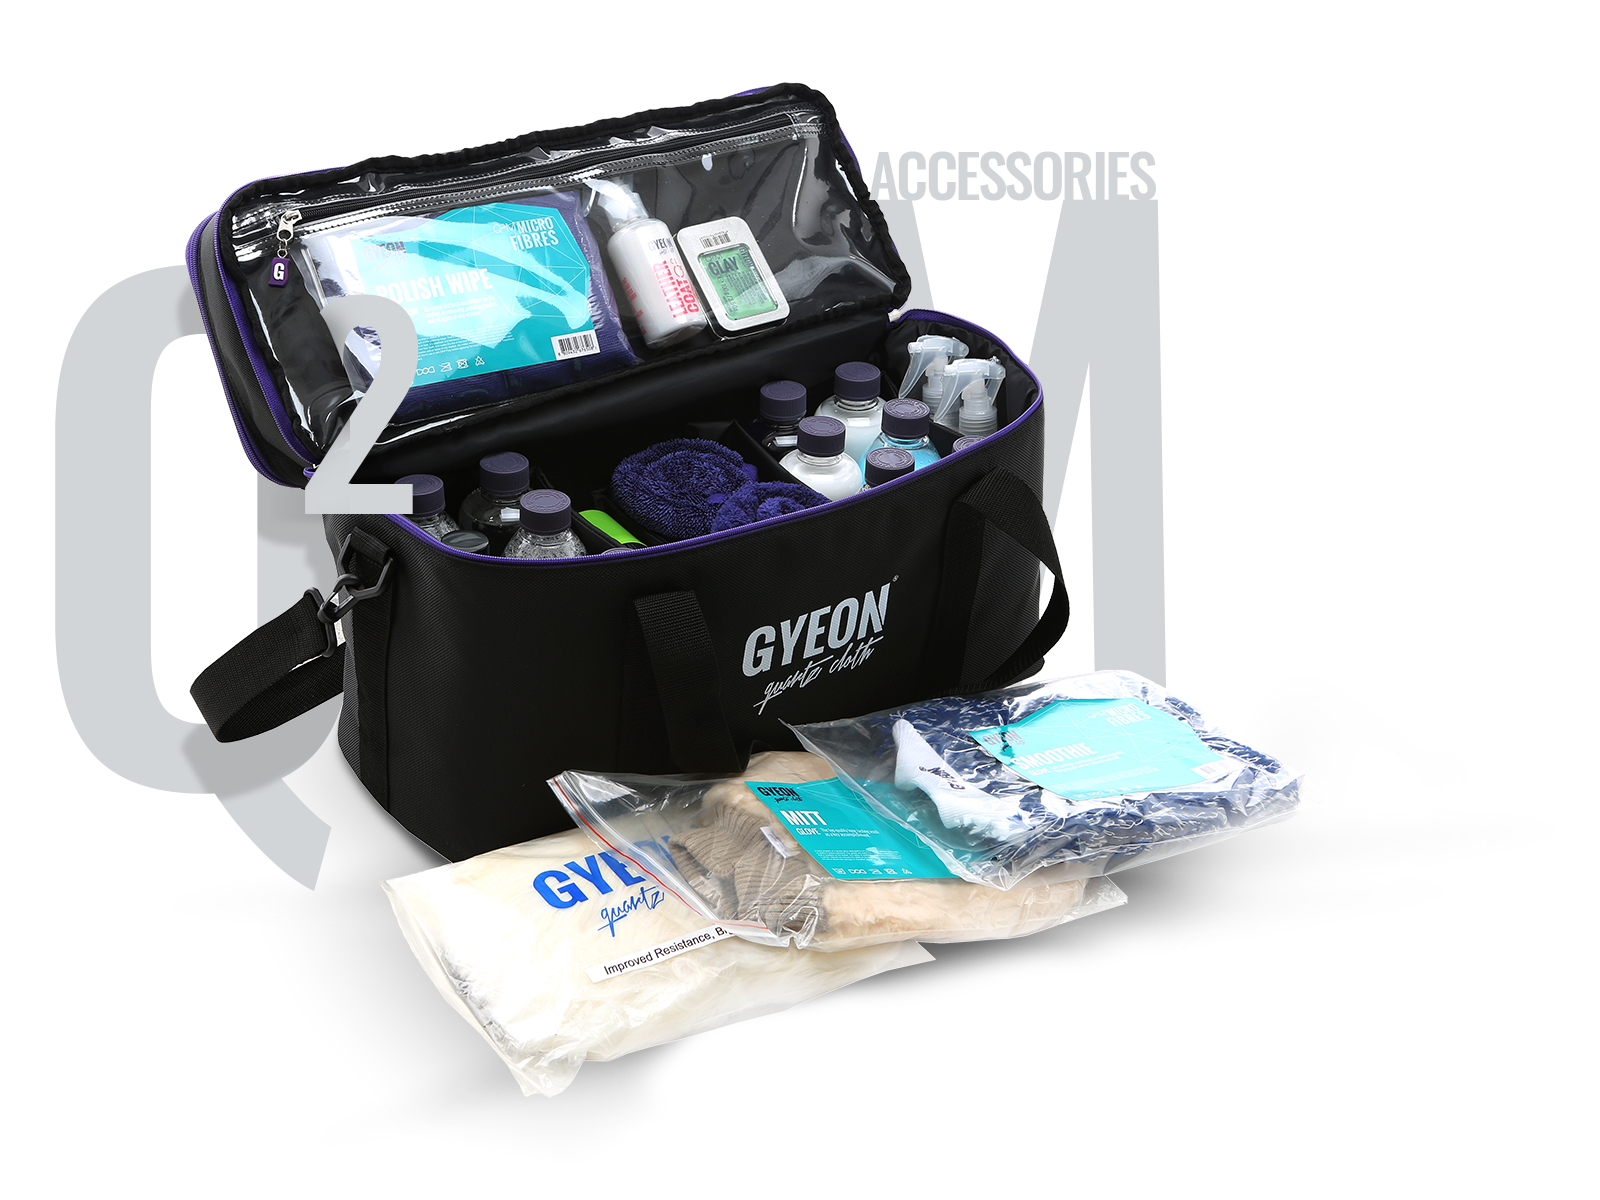 useful Gyeon bags